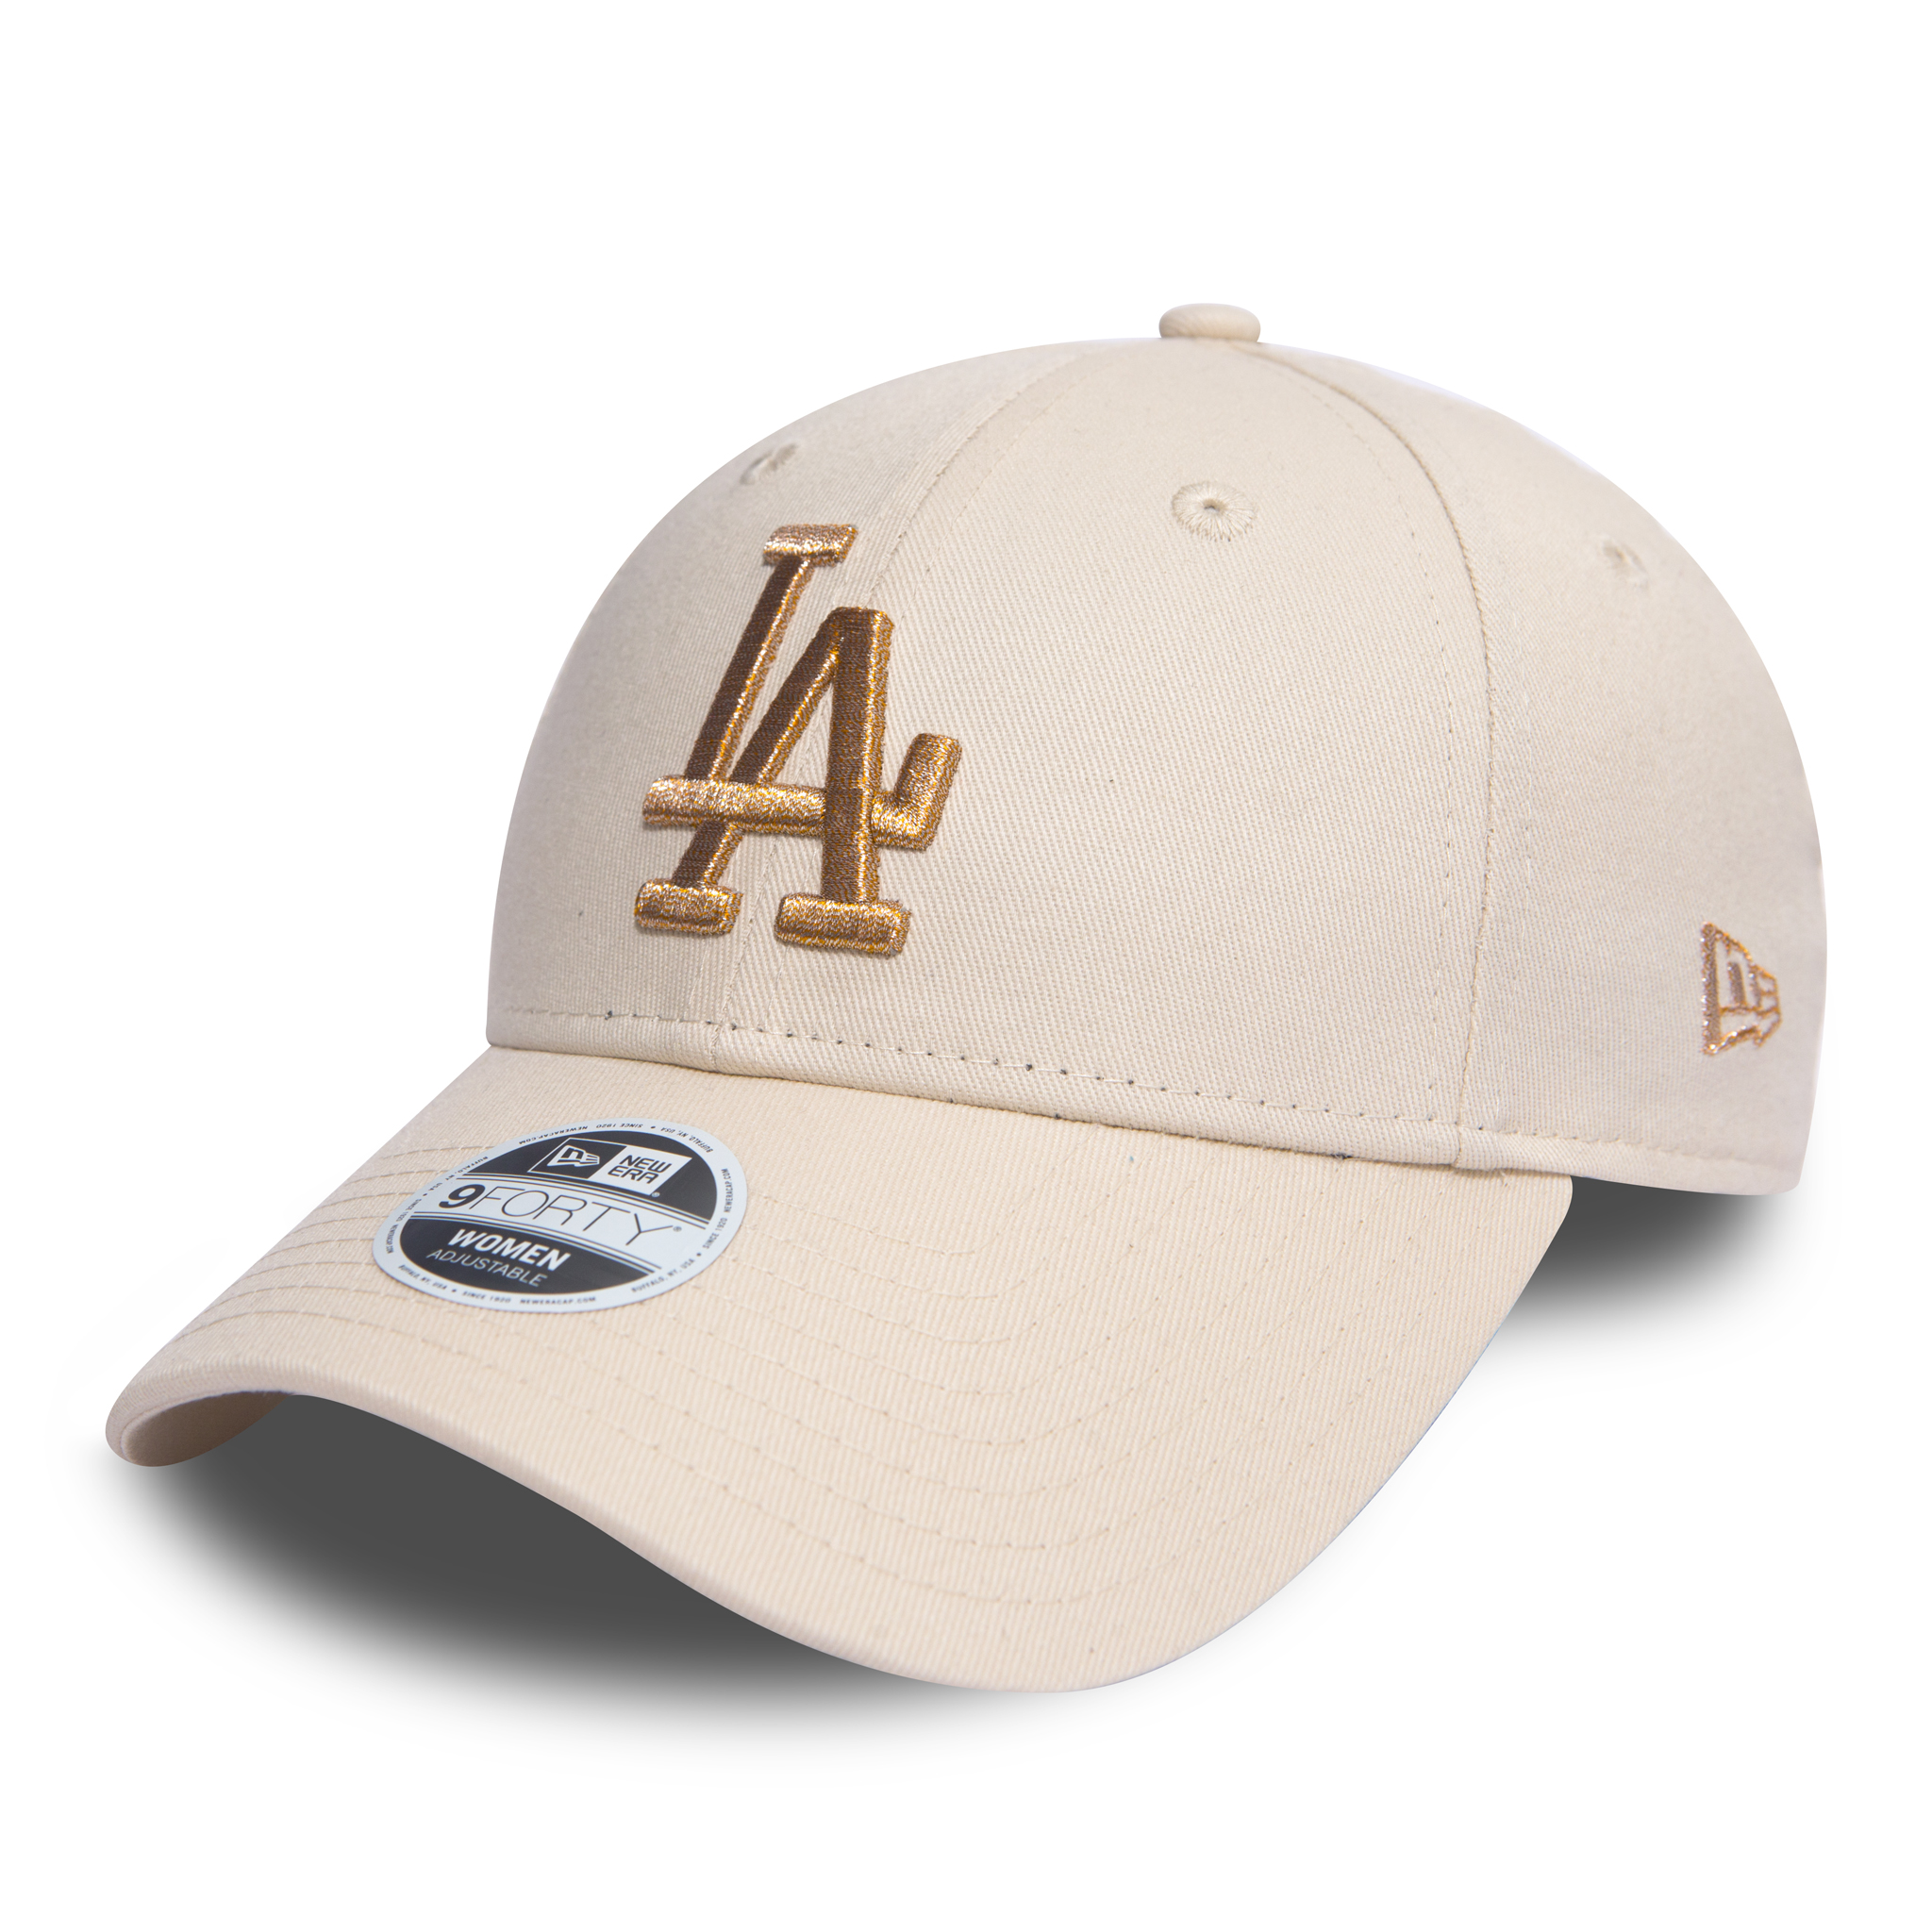 db2bec7b118 Details about New Era MLB Womens Essential 940 LA Dodgers Stone Gold One  Size Fits All